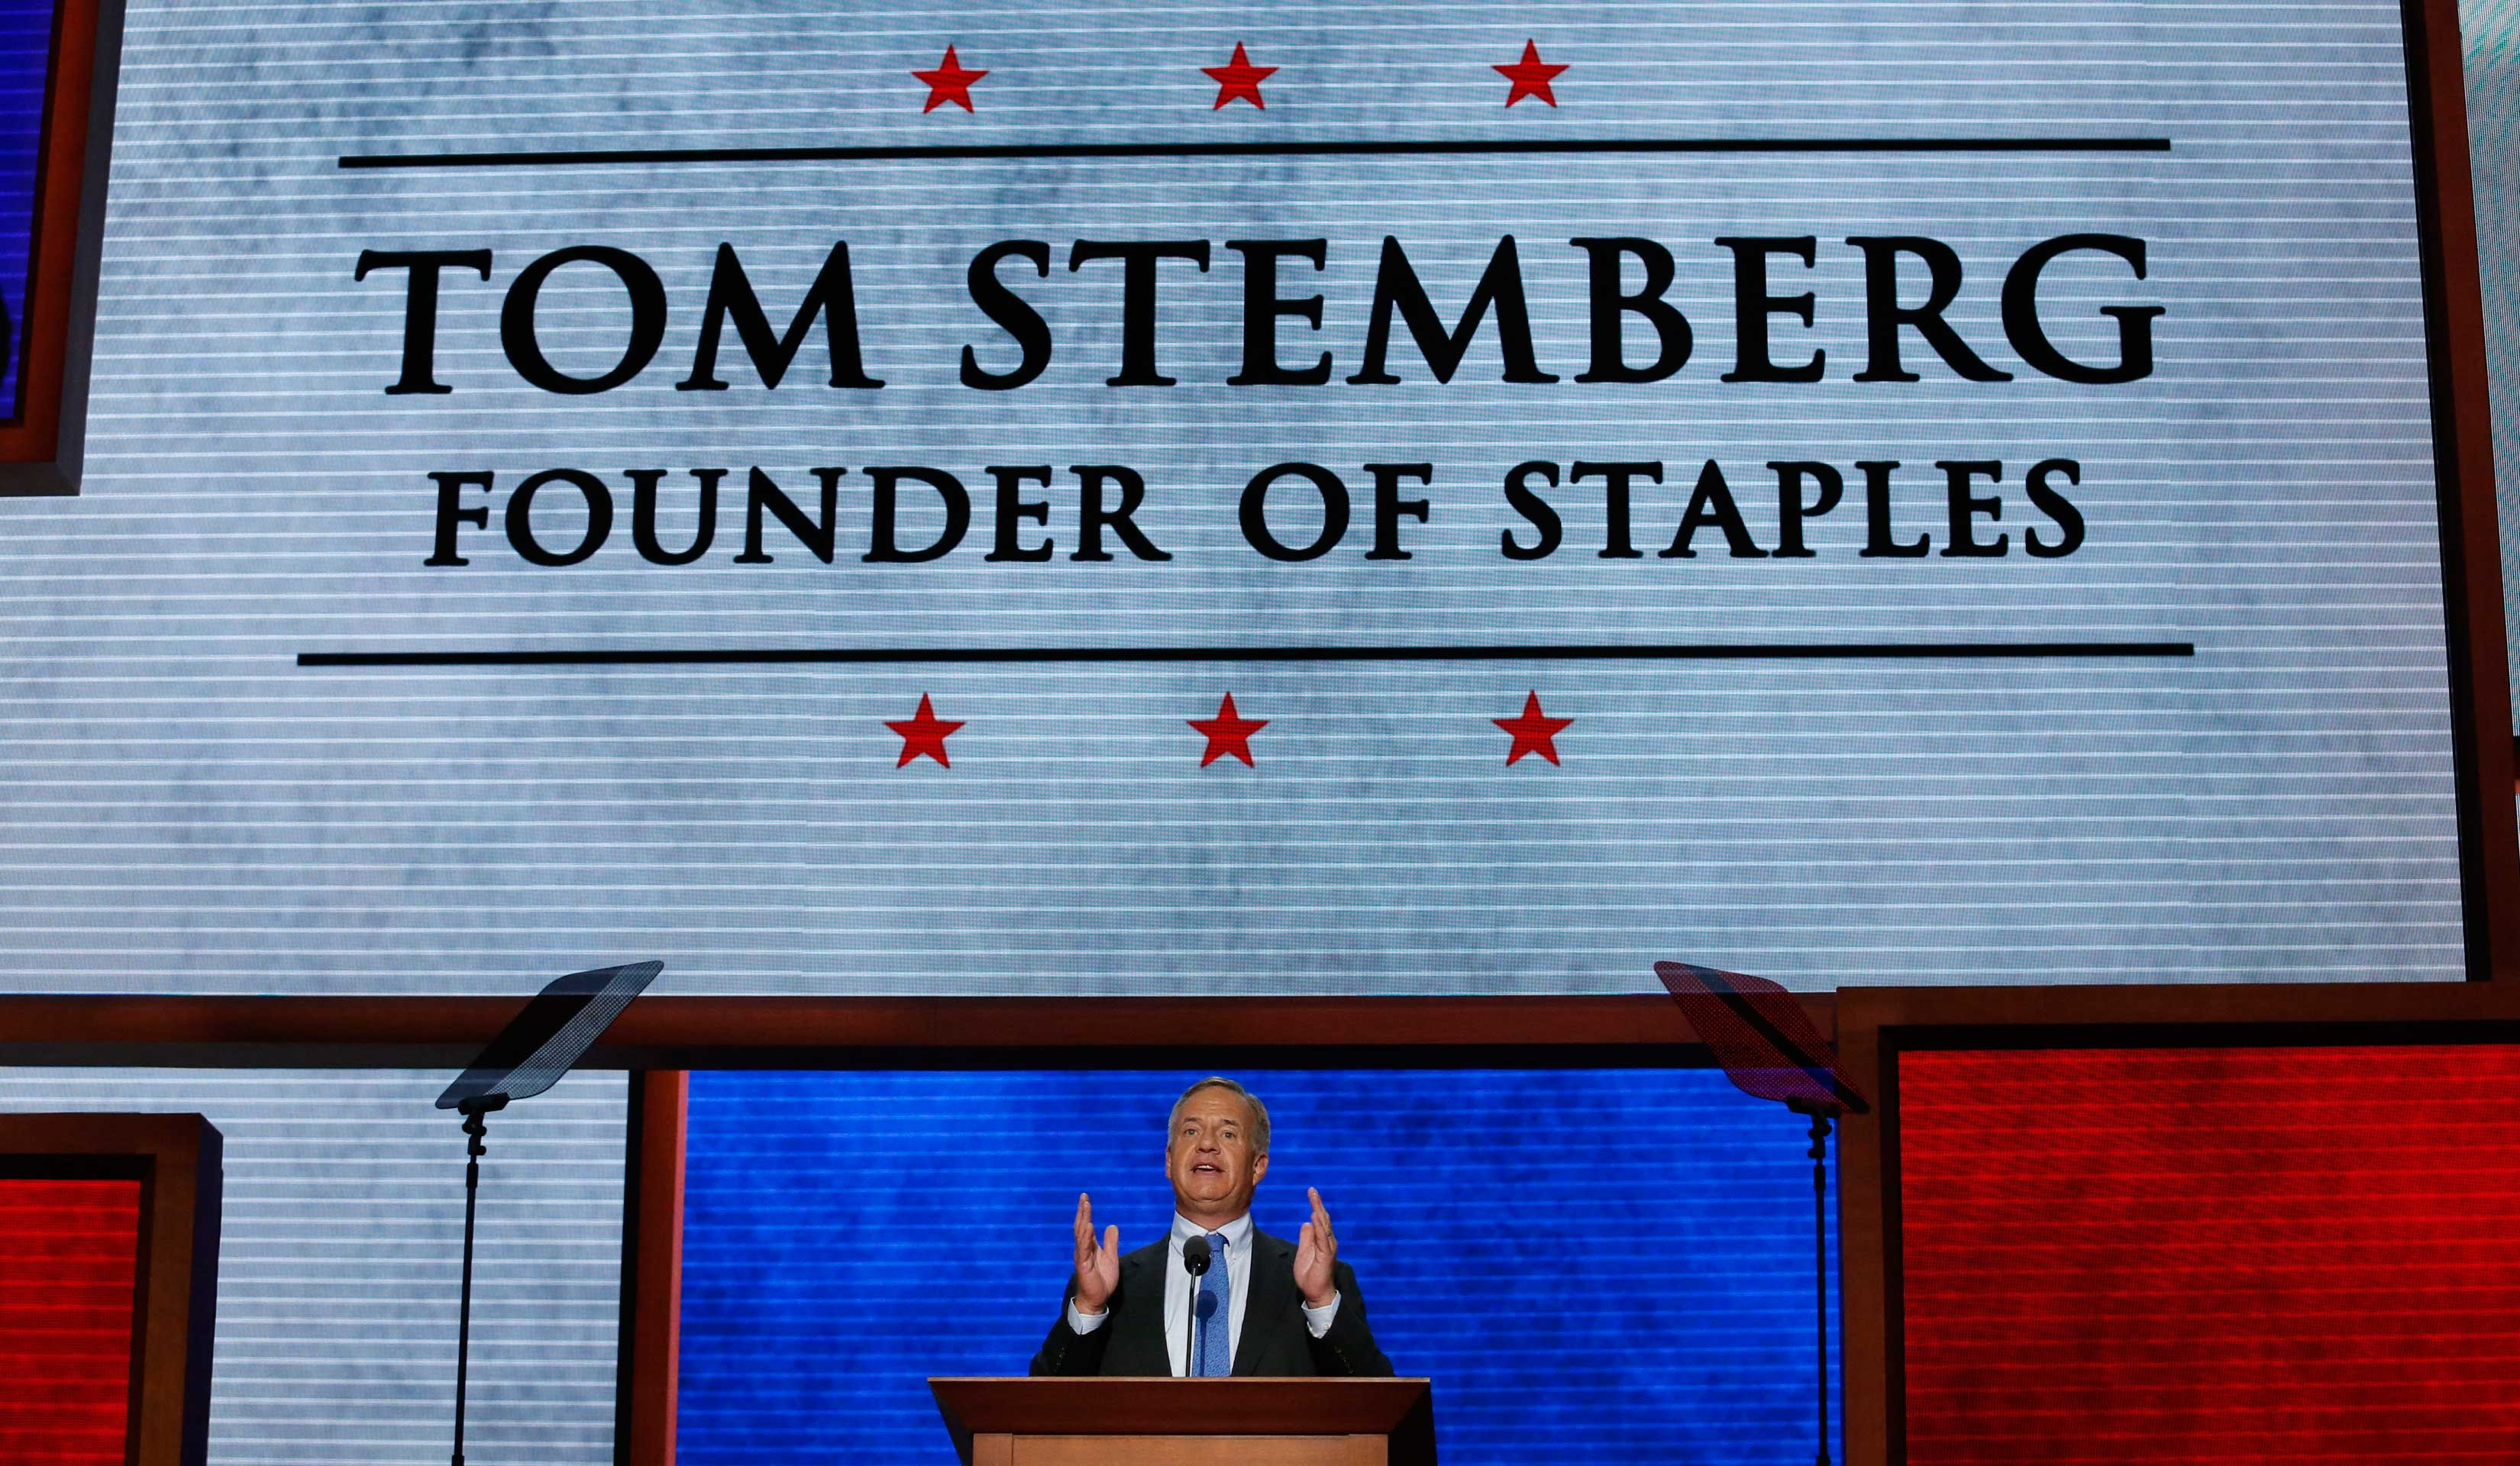 Stemberg, of the Staples chain of office supply stores, offers a testimonial to Republican presidential nominee Romney during the final session of the Republican National Convention in Tampa